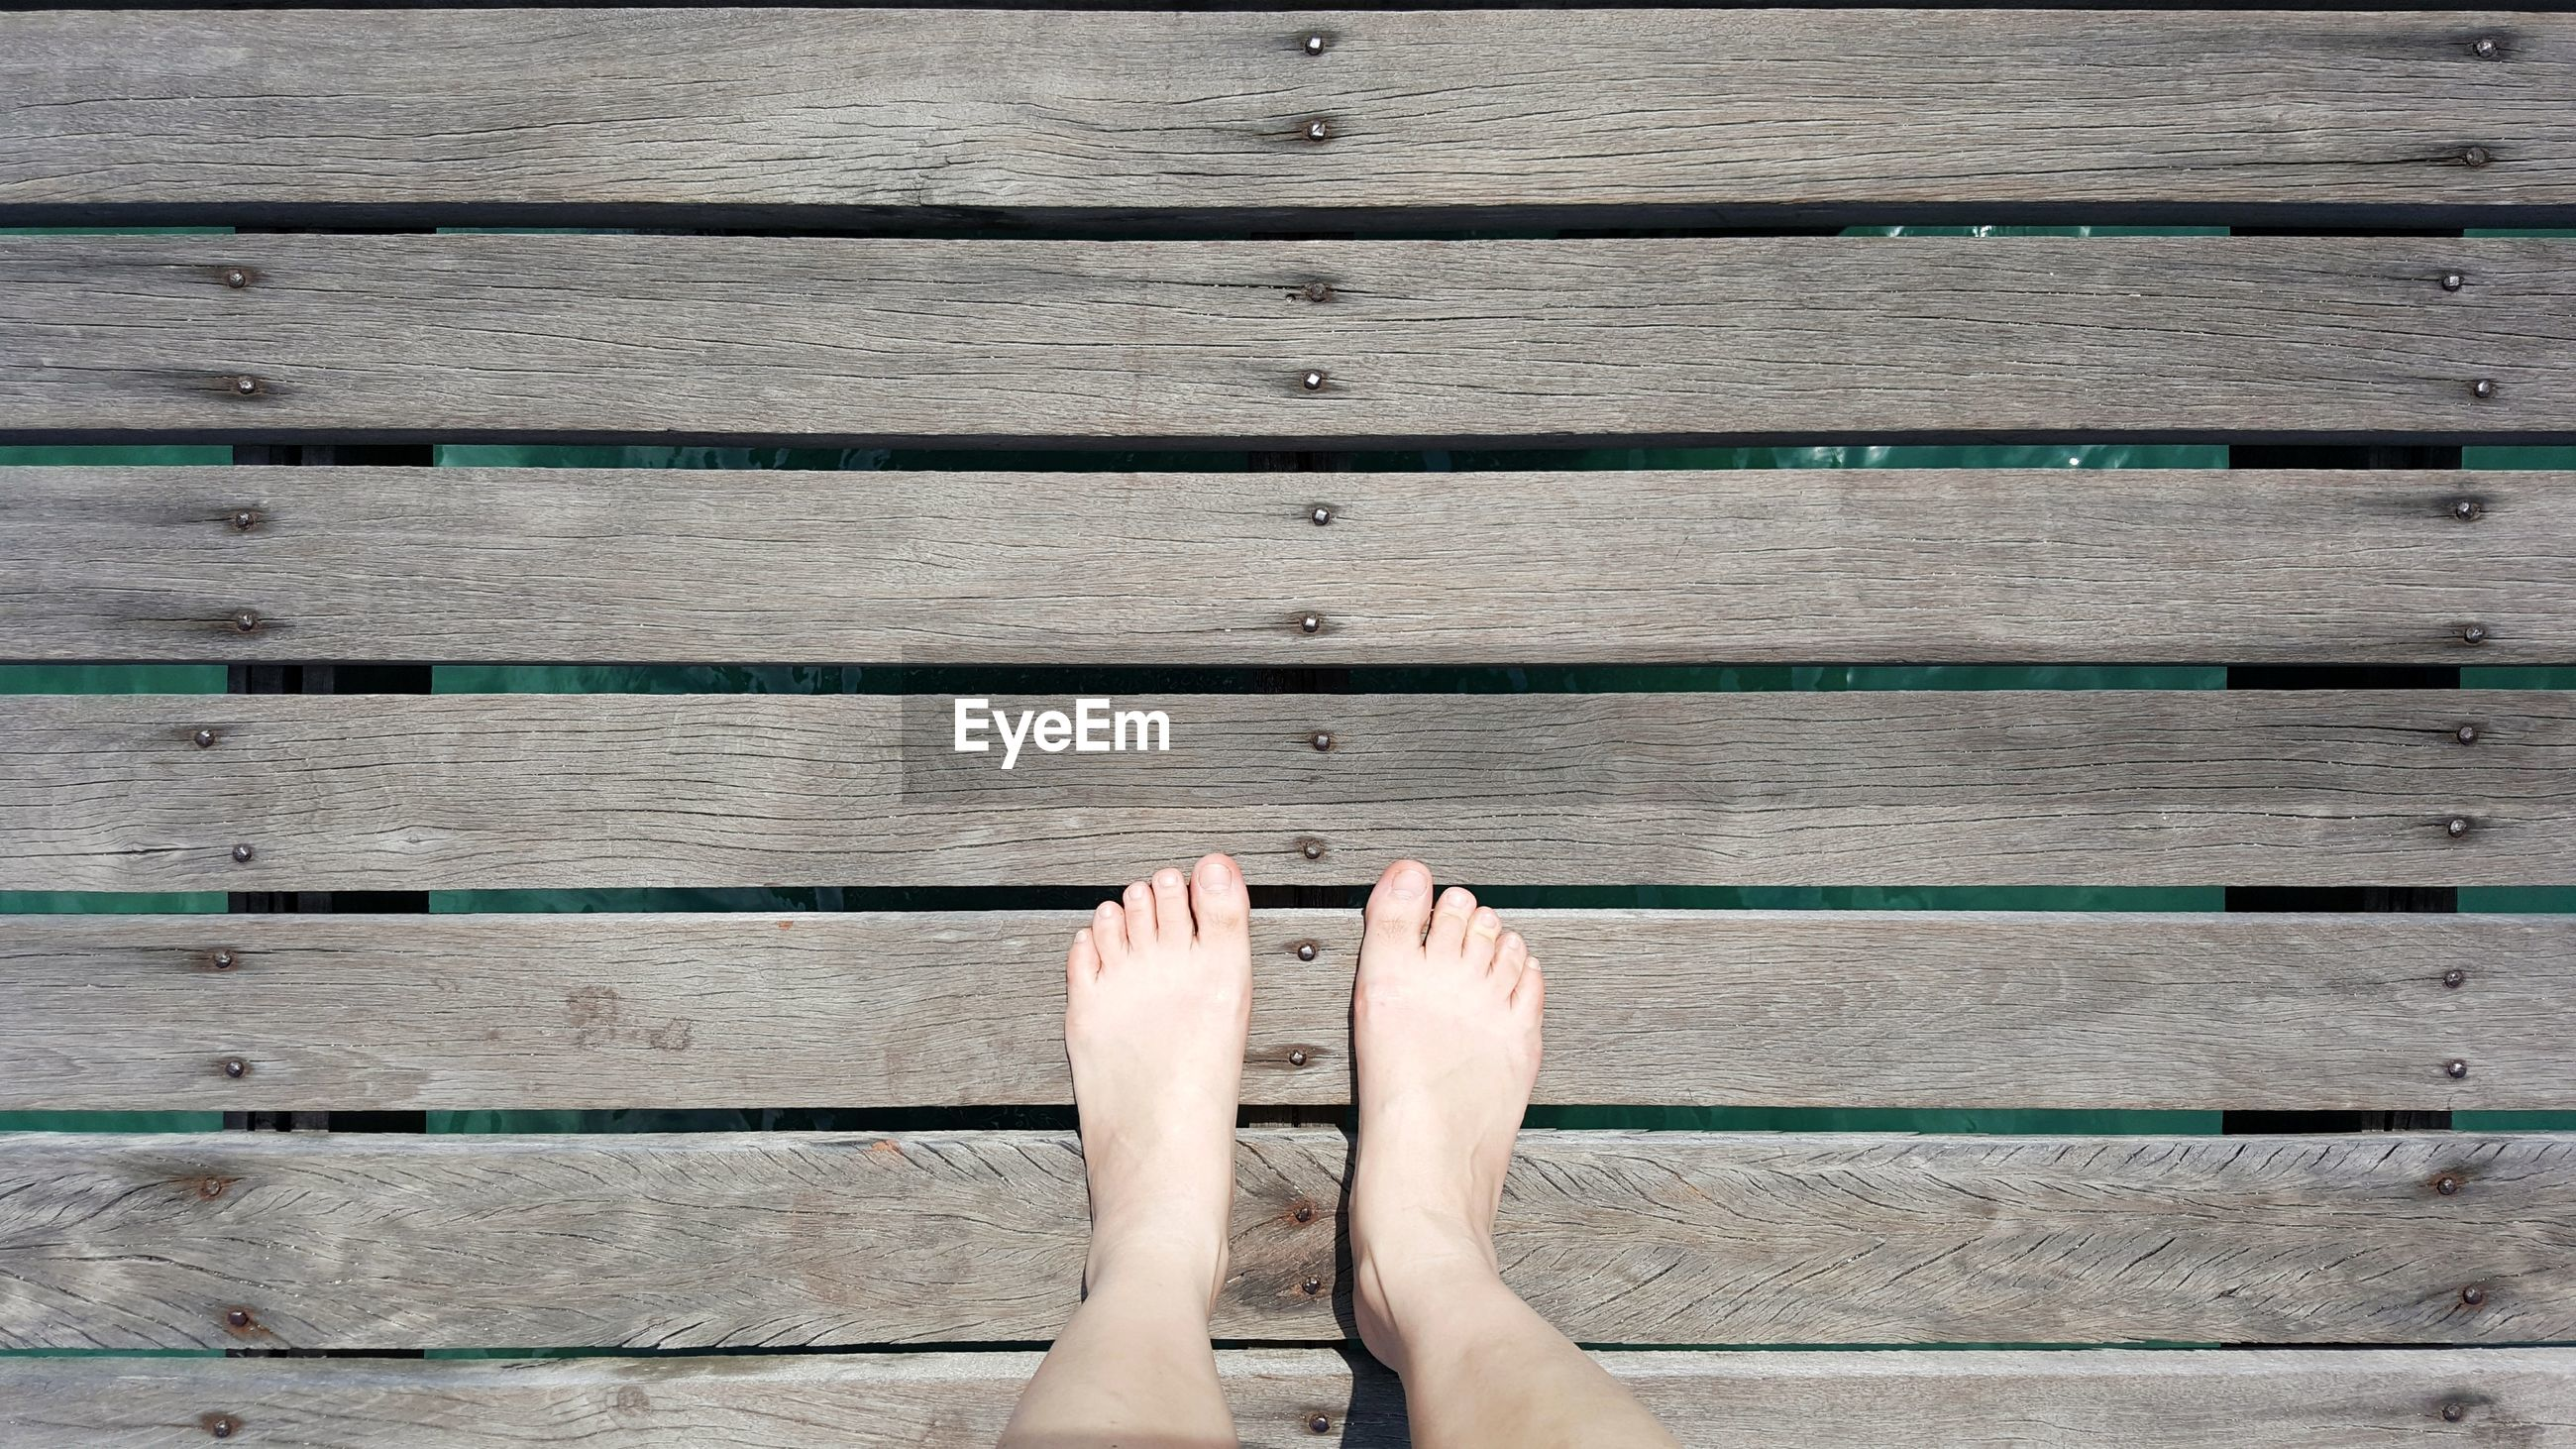 Low section of person legs on pier